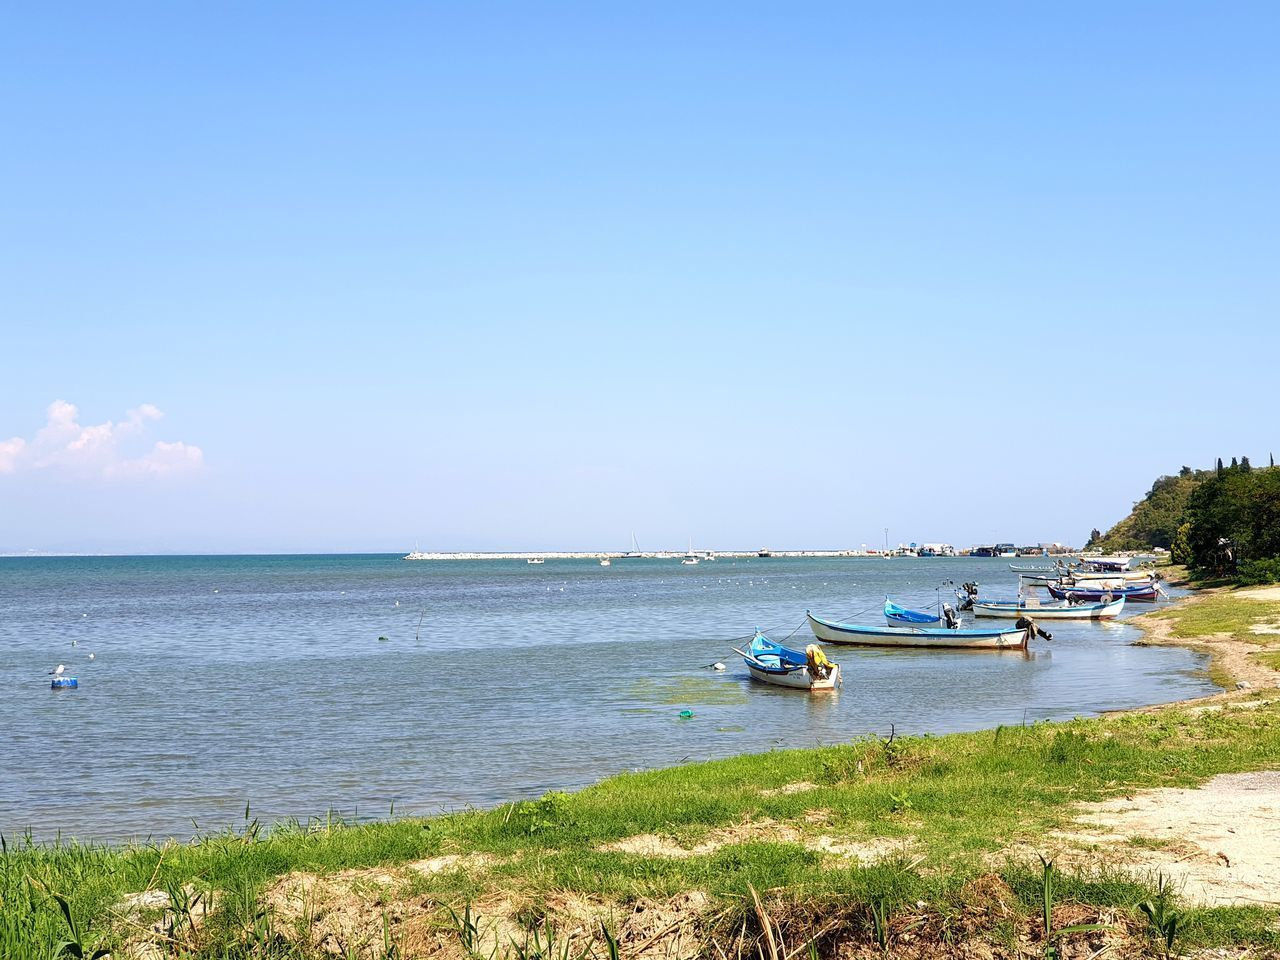 VIEW OF BOATS MOORED ON SEA AGAINST SKY